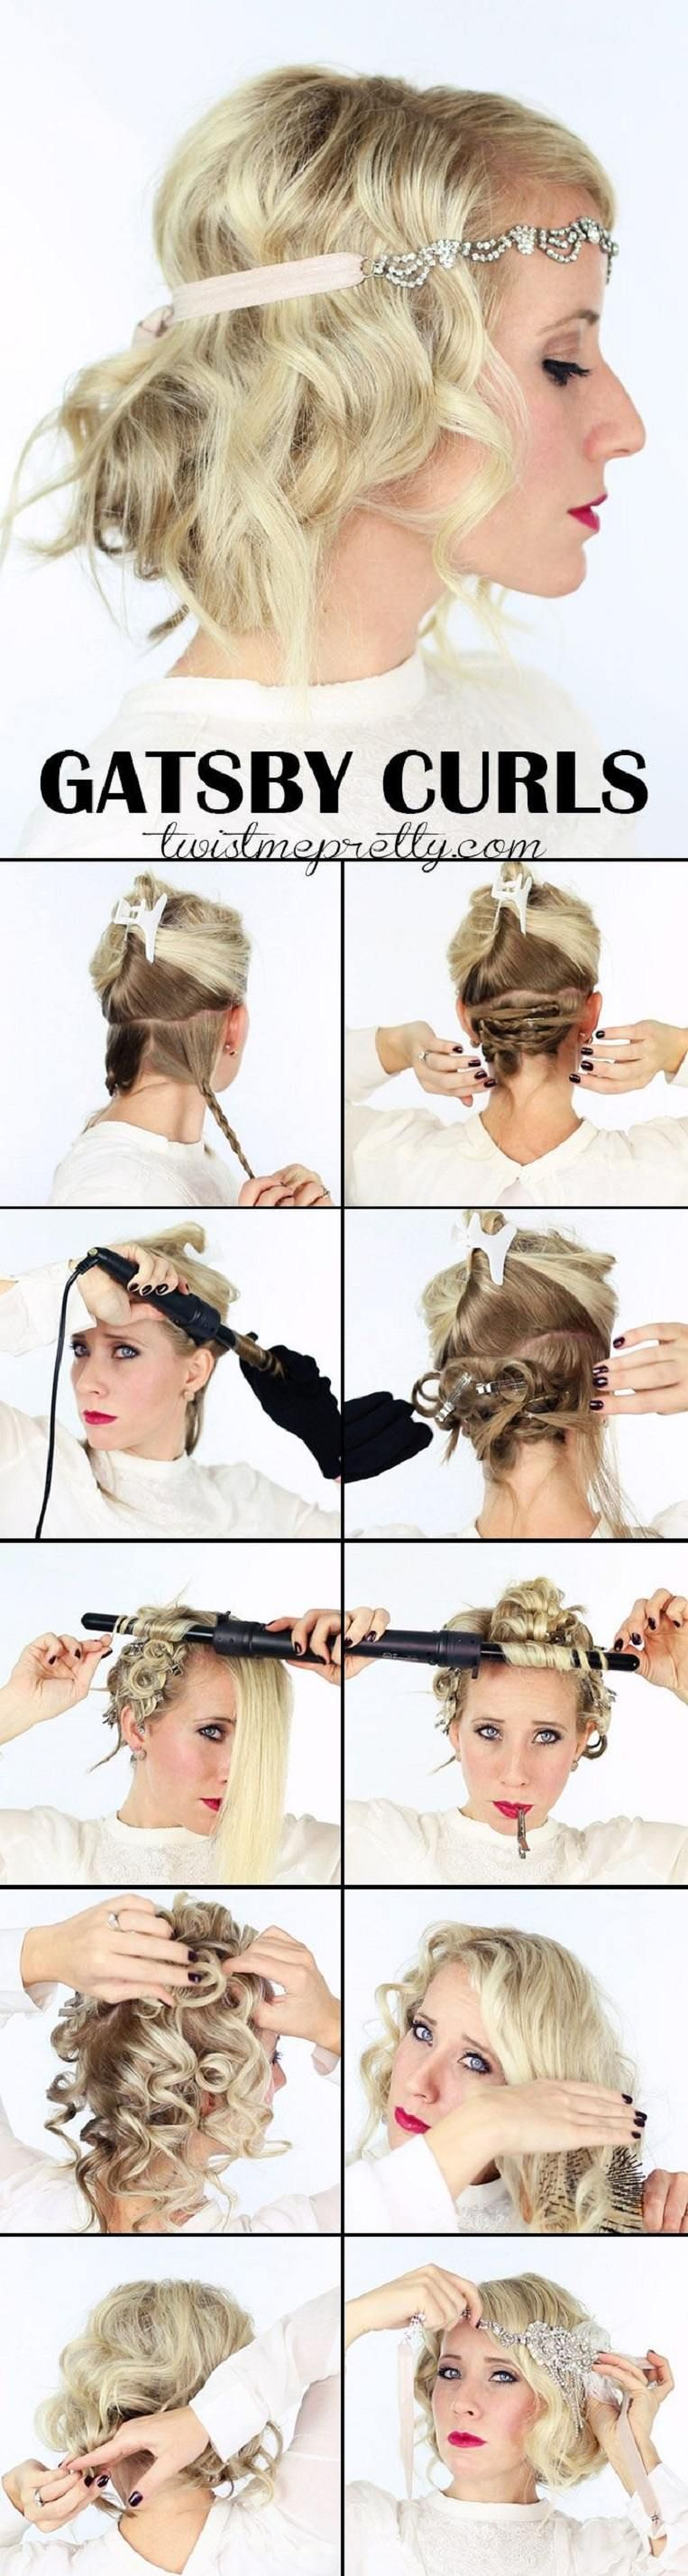 Tutorials: 12 Super Easy DIY Wedding Hairstyles | DIY wedding, Super ...